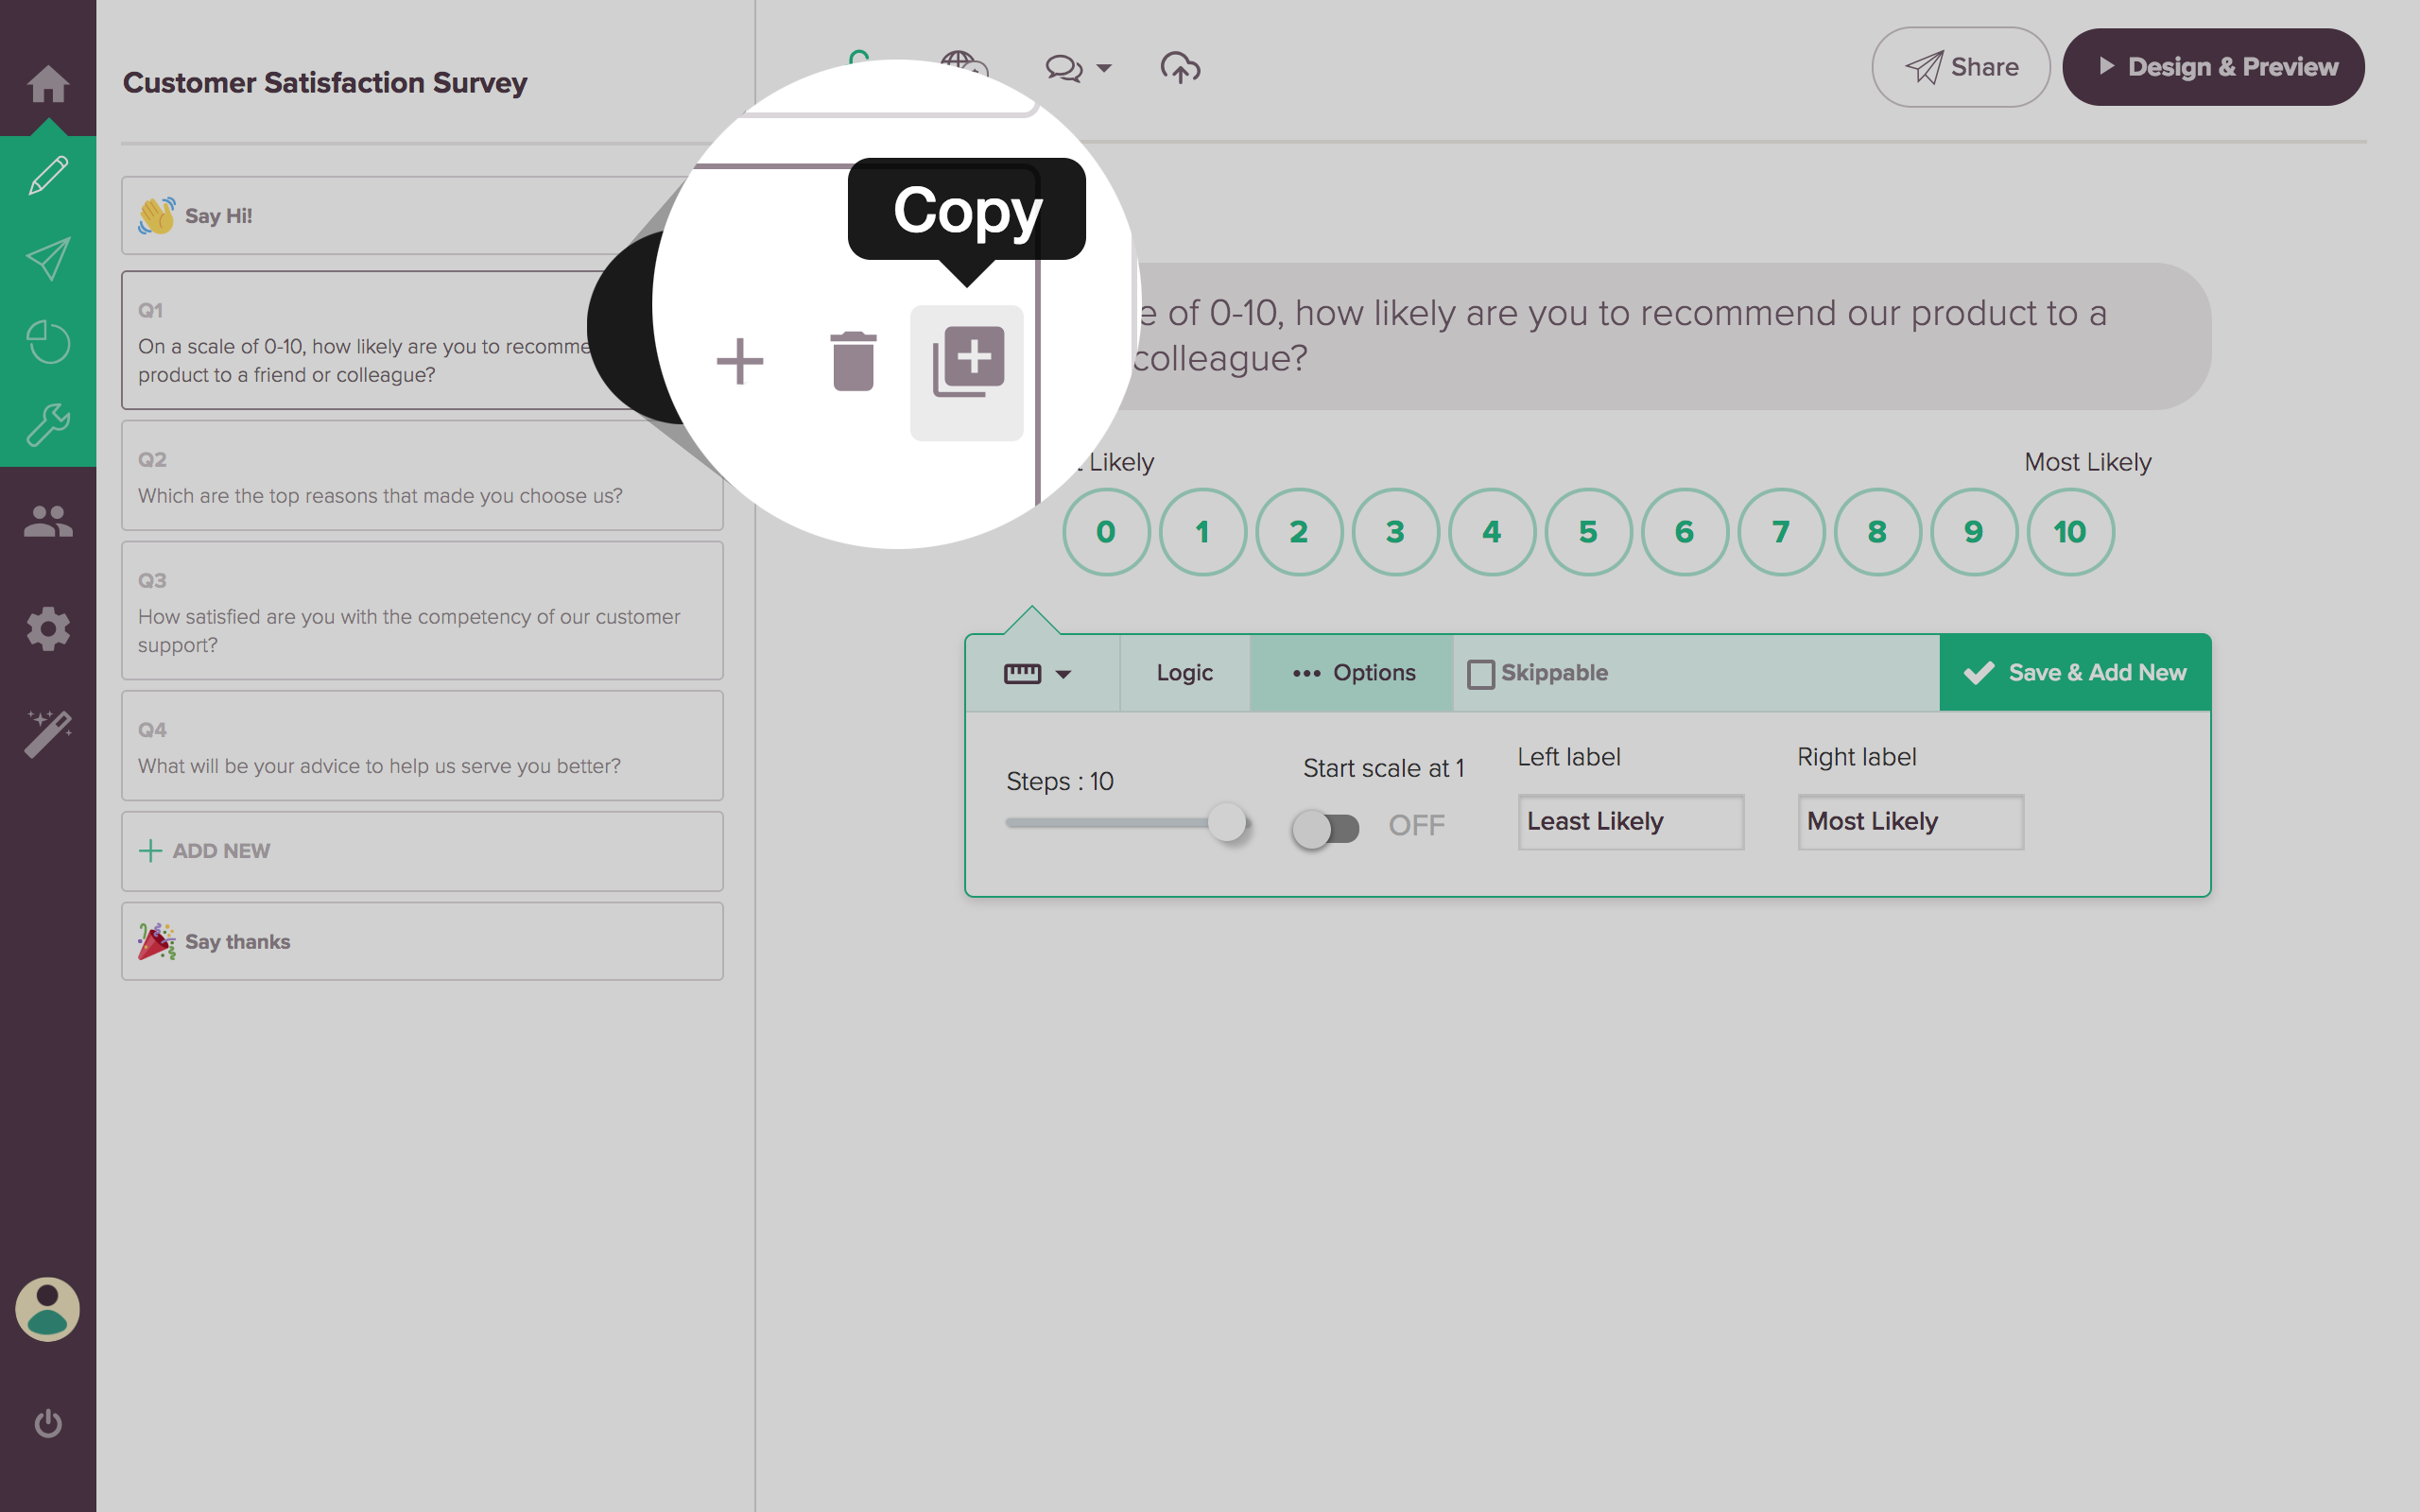 Clone your survey questions easily with all its parameters intact.